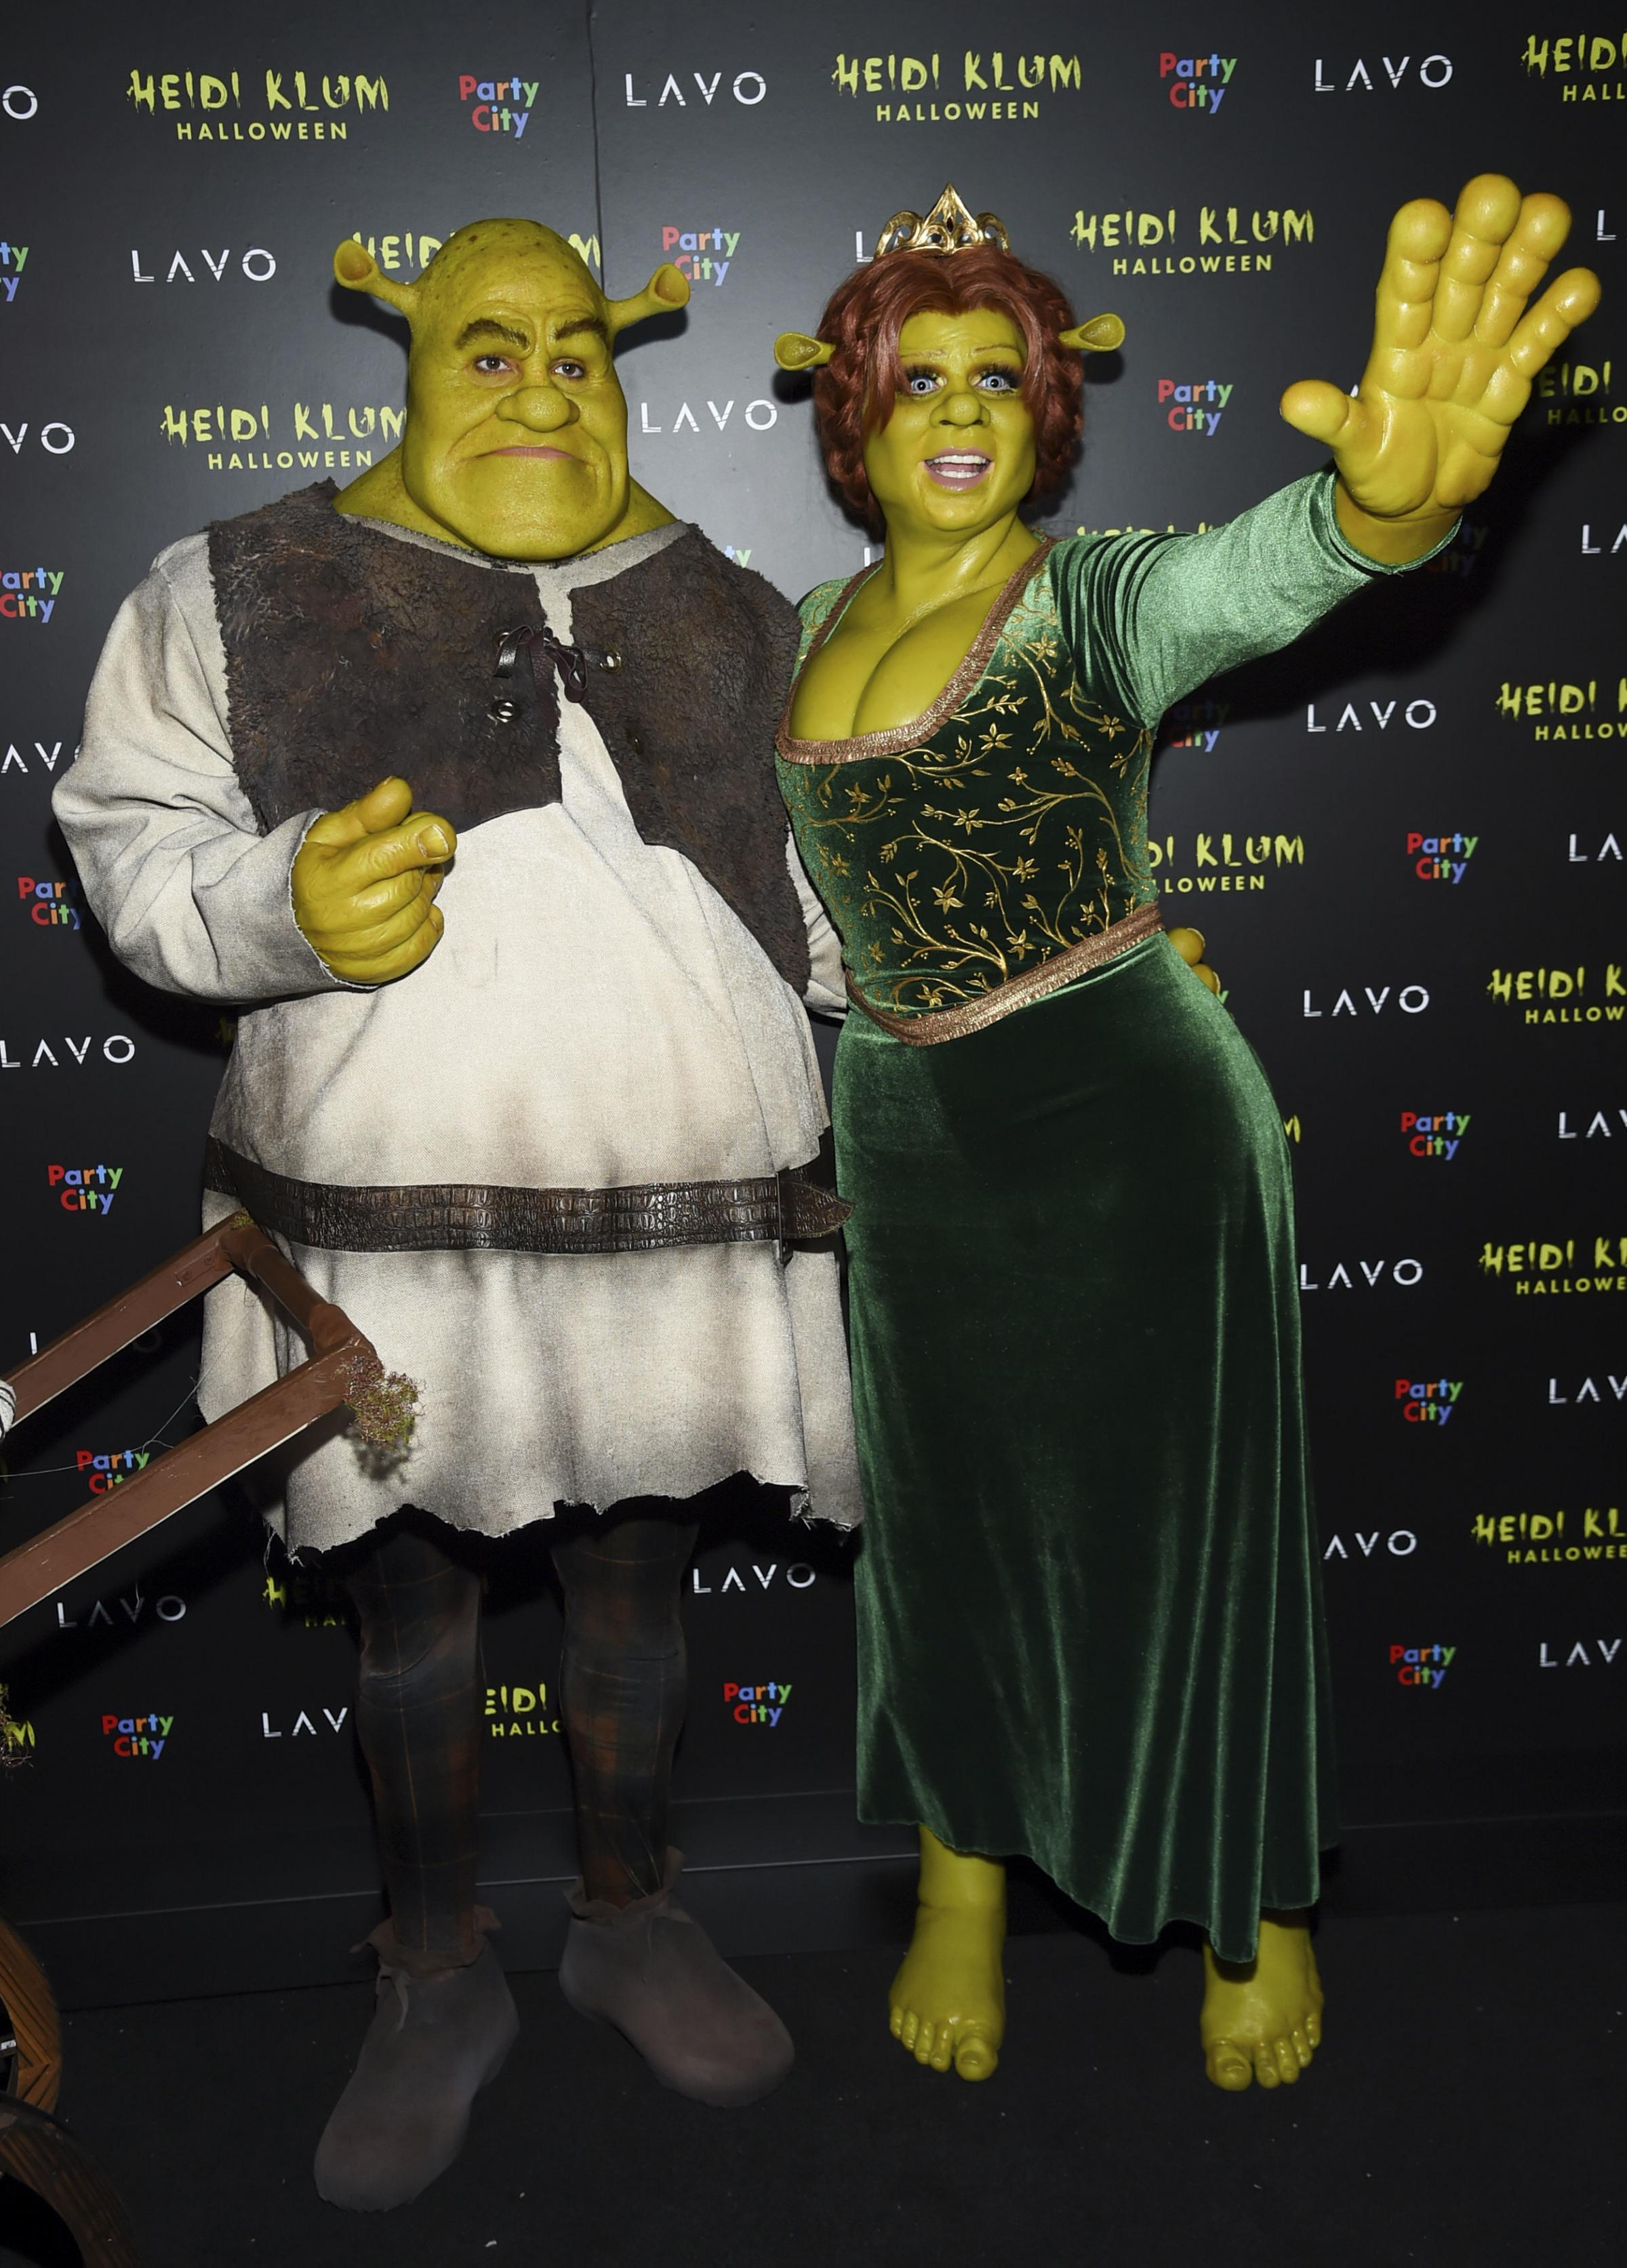 Heidi Klum and boyfriend at a Halloween party in New York. When did dressing up become a competitive sport?